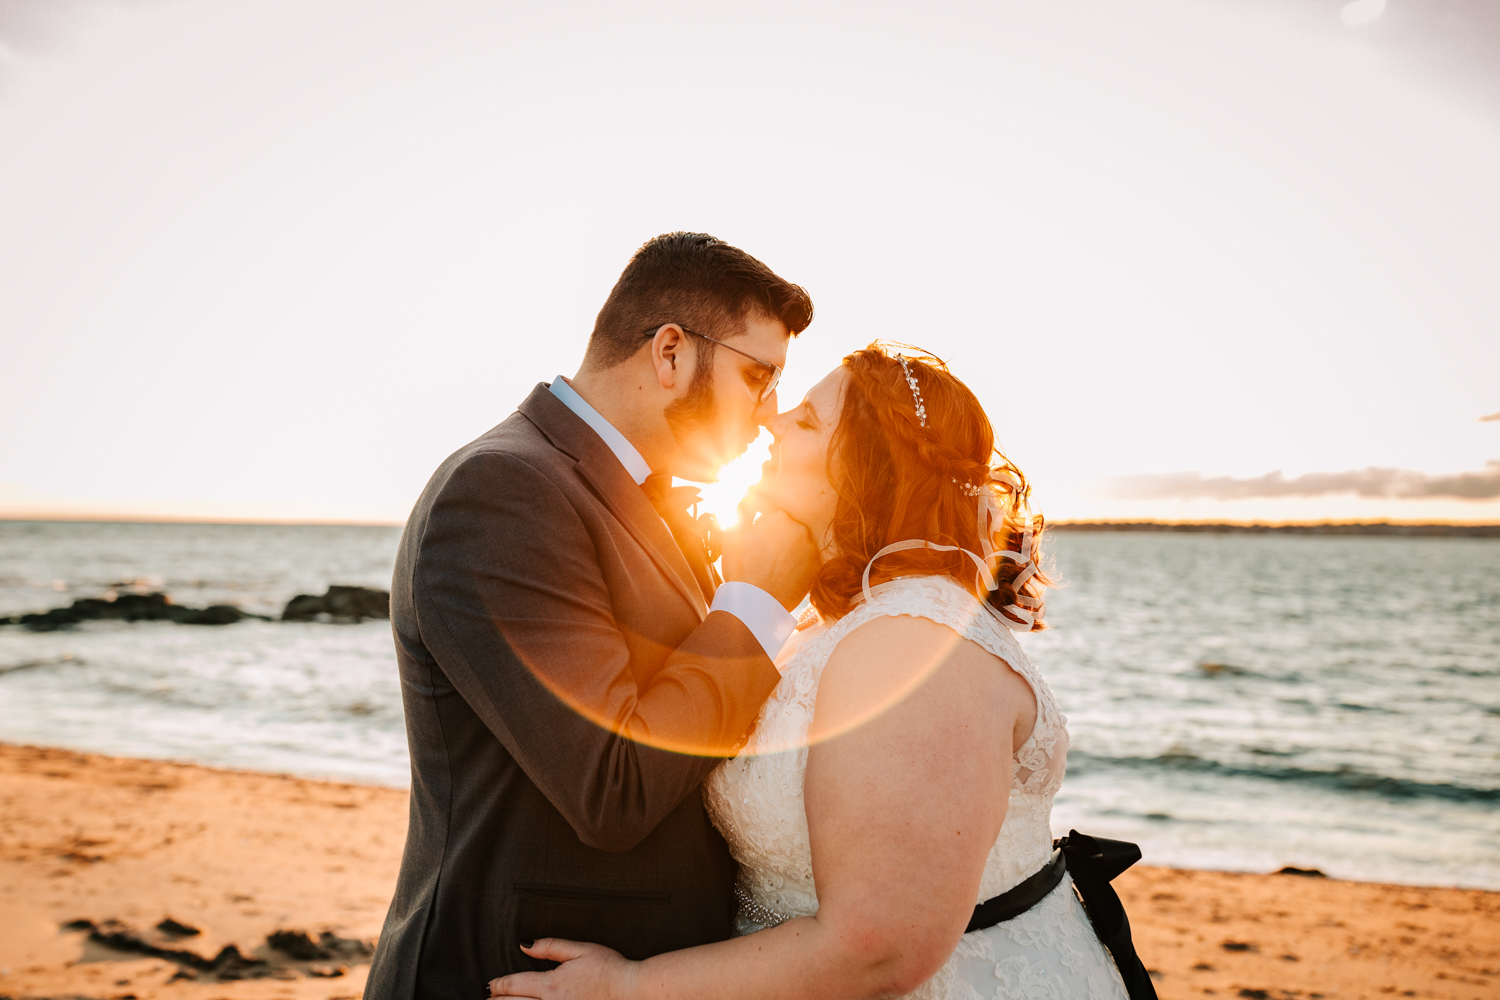 Sunflare with bride and groom kissing on sea wedding